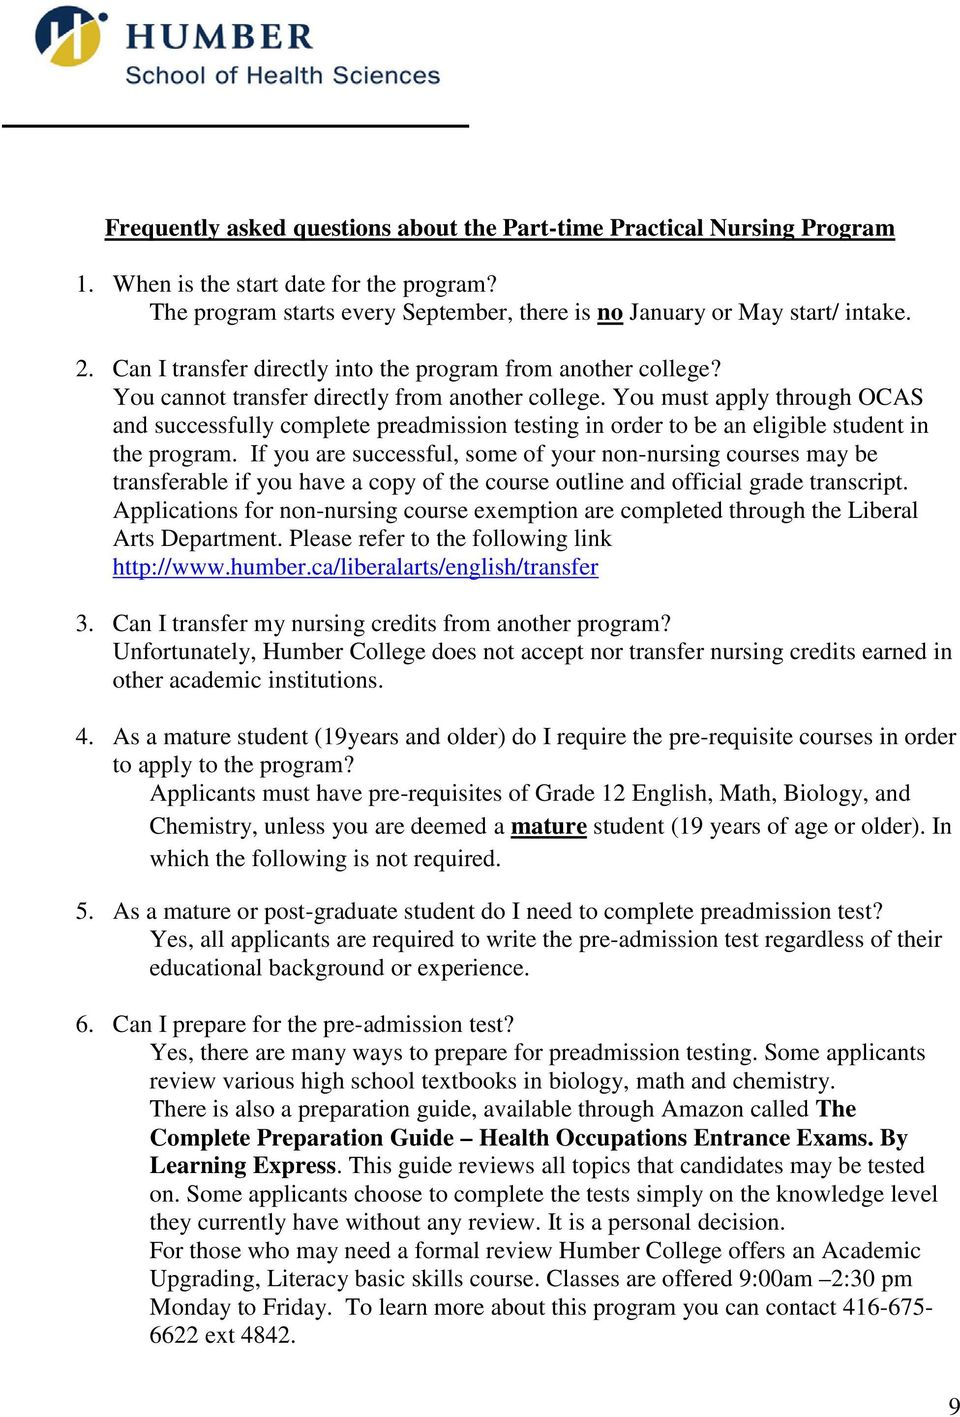 You must apply through OCAS and successfully complete preadmission testing  in order to be an eligible